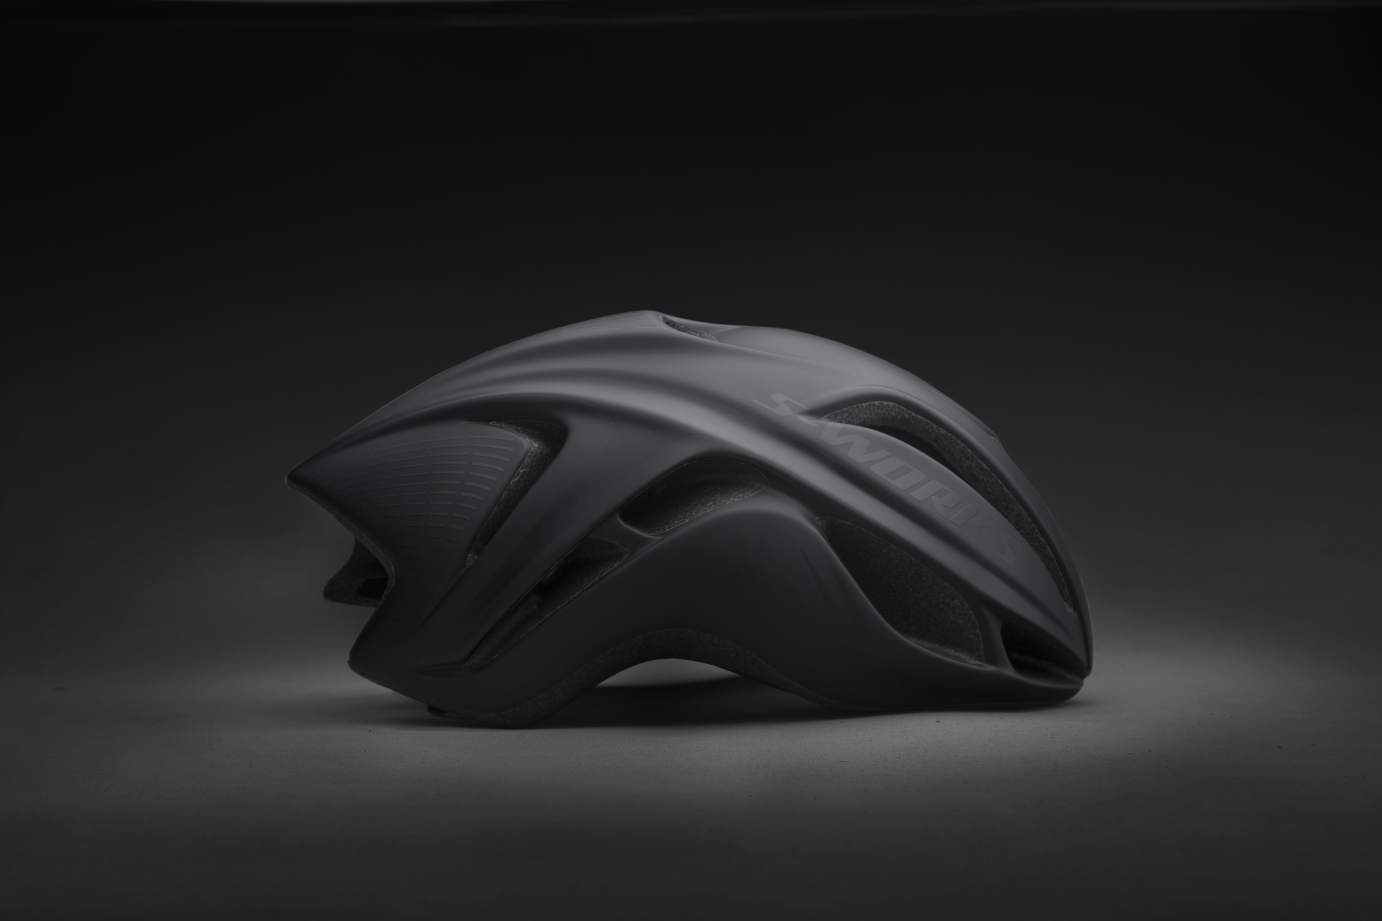 SPECIALIZED CAPACETE S-WORKS EVADE